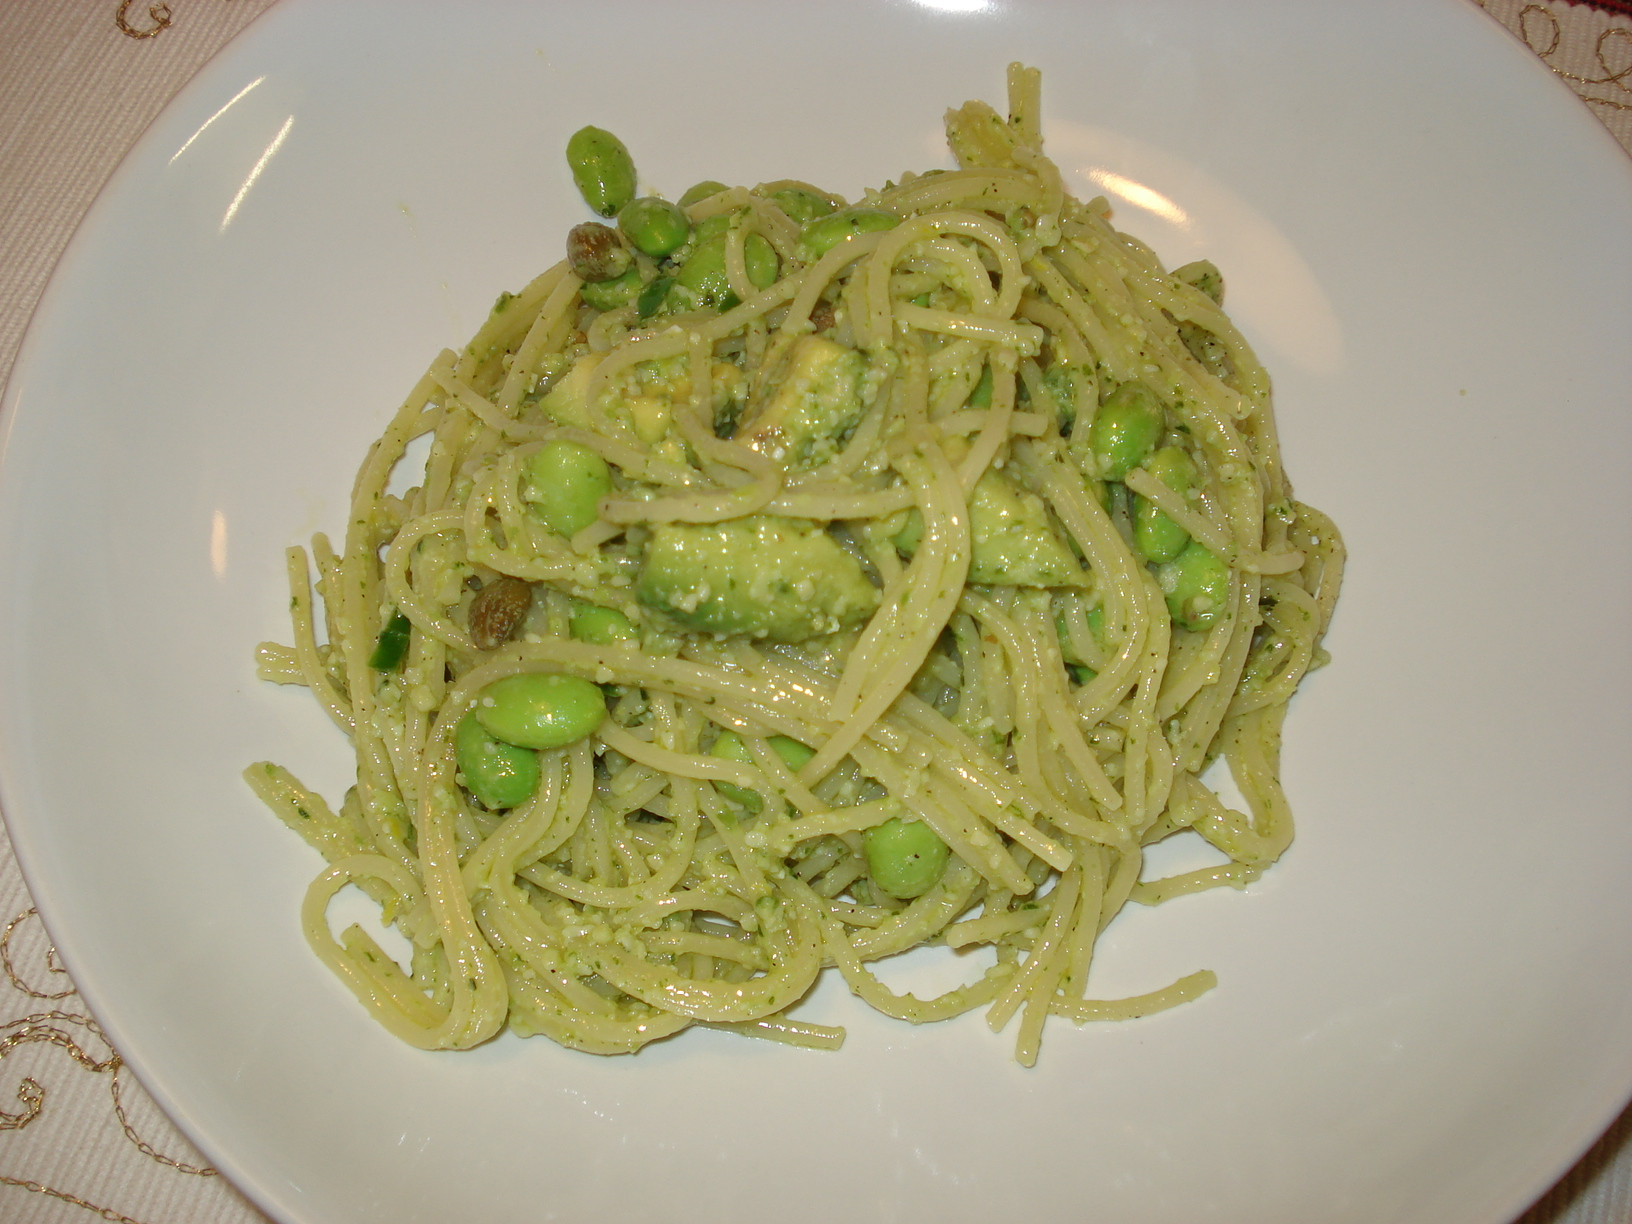 Pasta with chilli and lemon pesto, soybeans and avocado